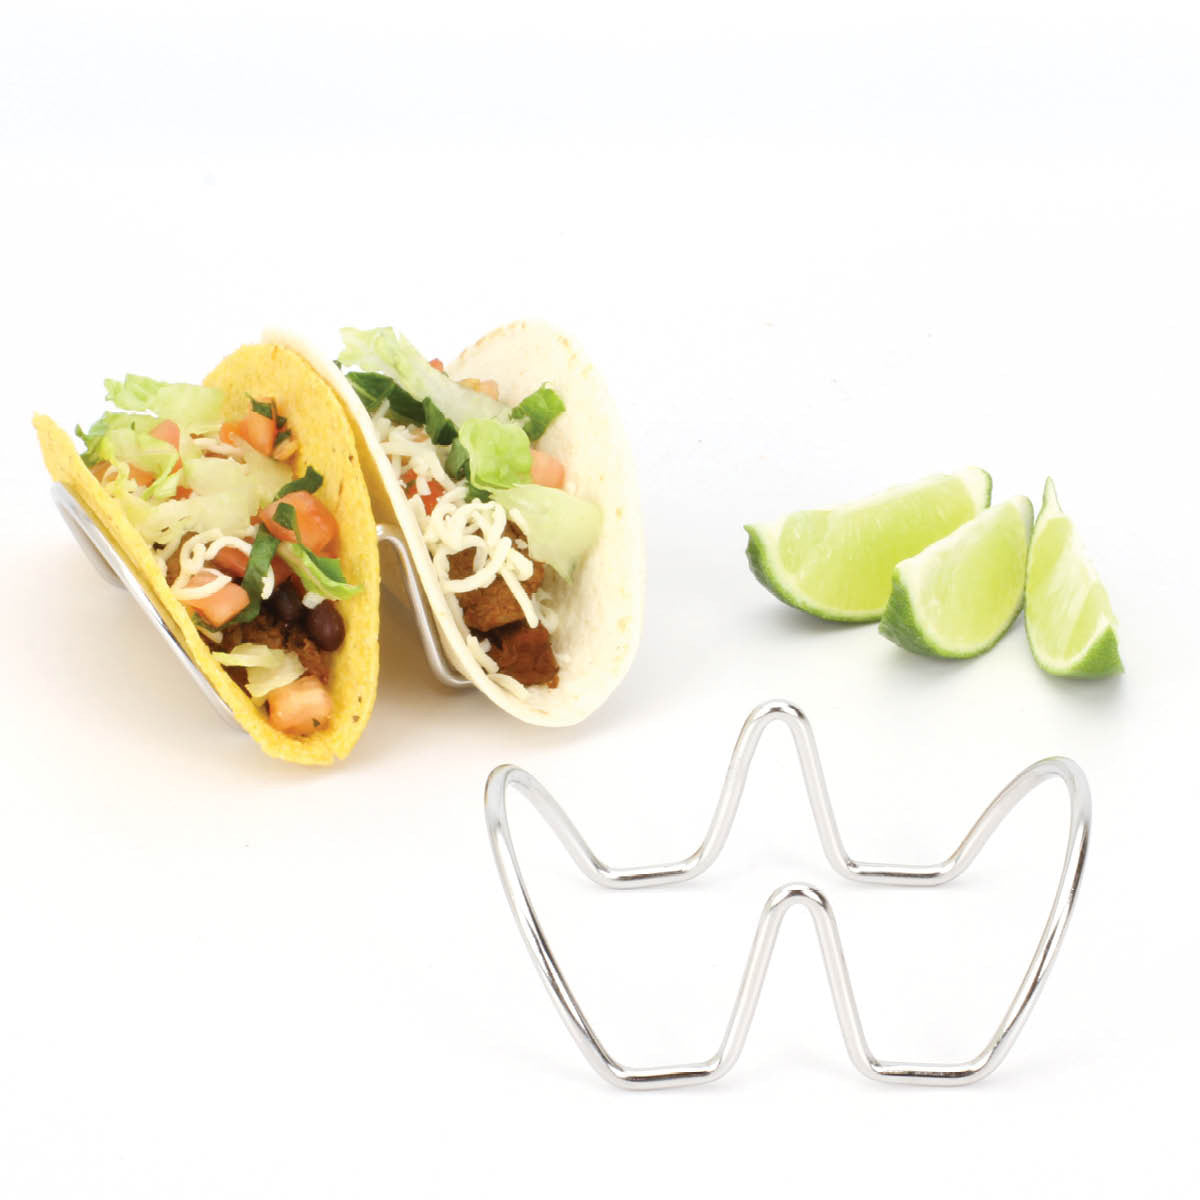 Taco Holders Stands 2 Pack Holds Tacos Each